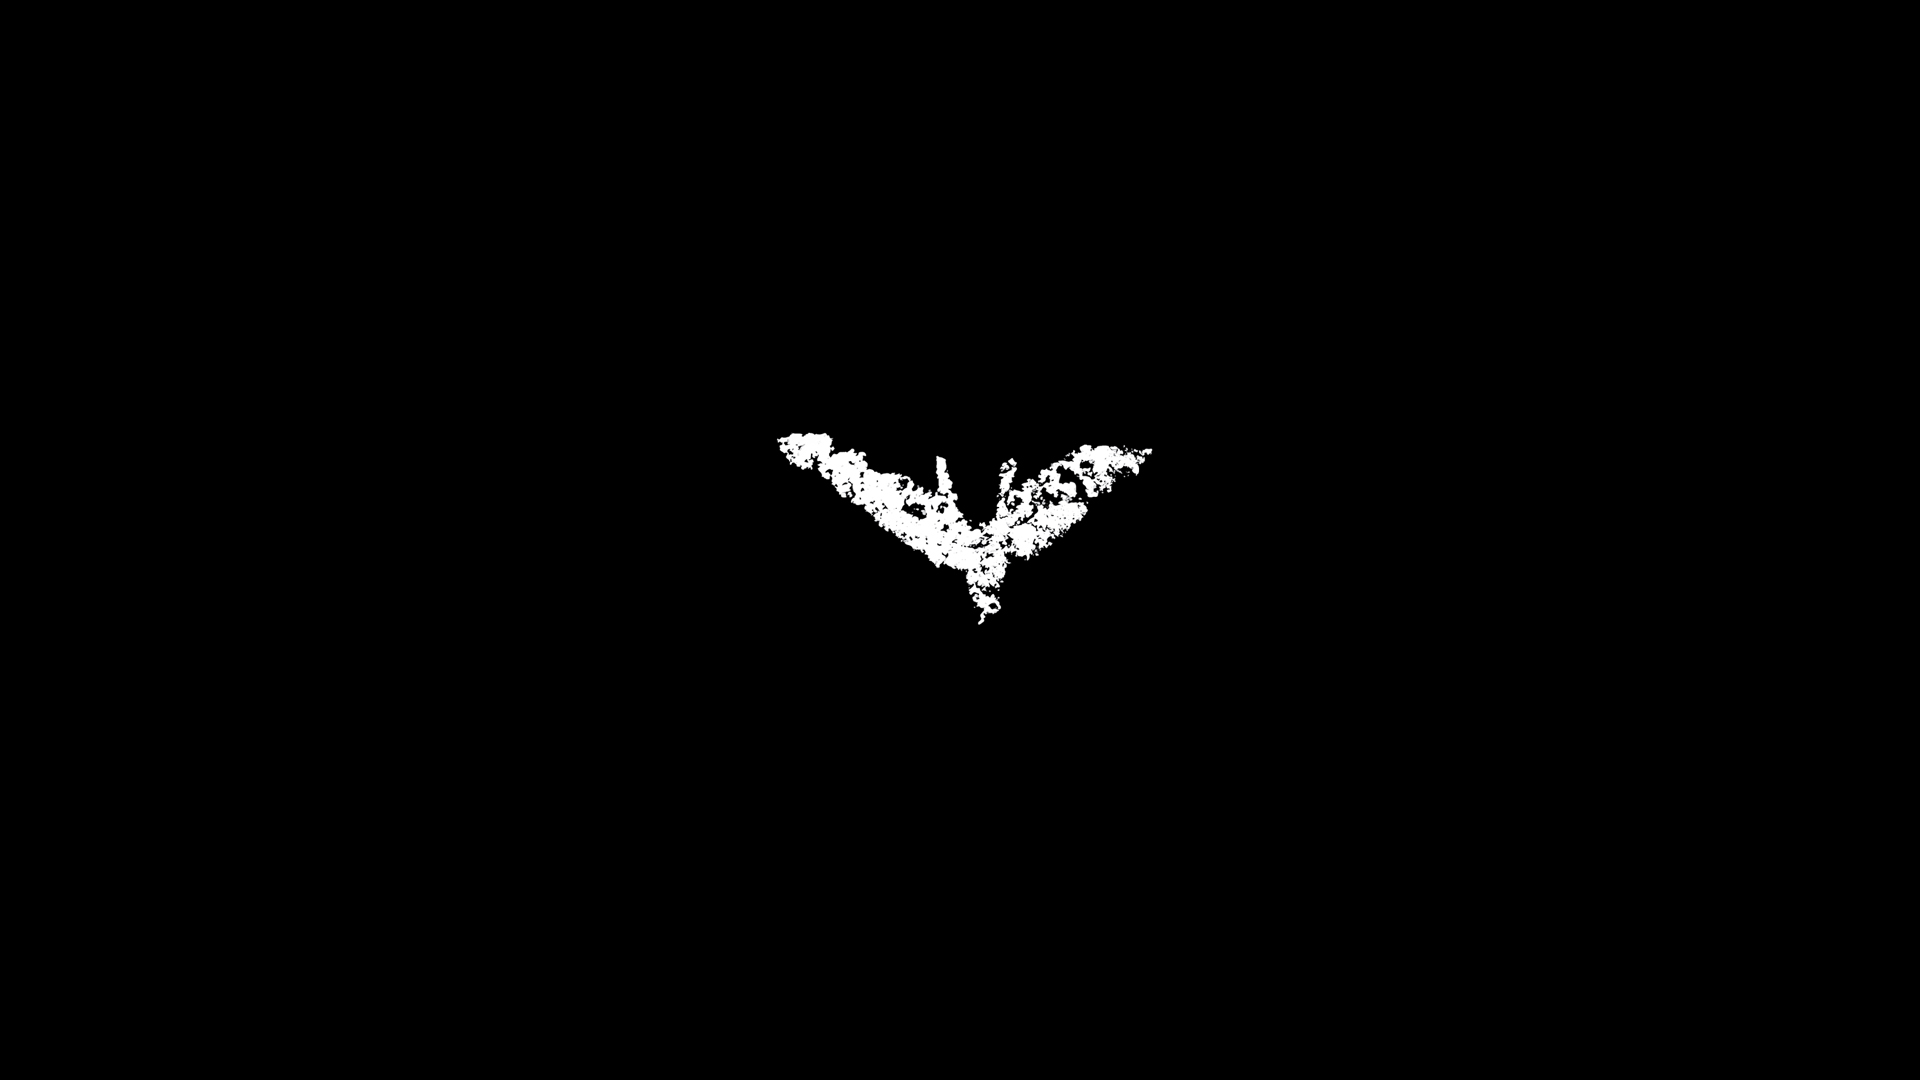 The Dark Knight Rises Full HD Wallpaper And Background Image